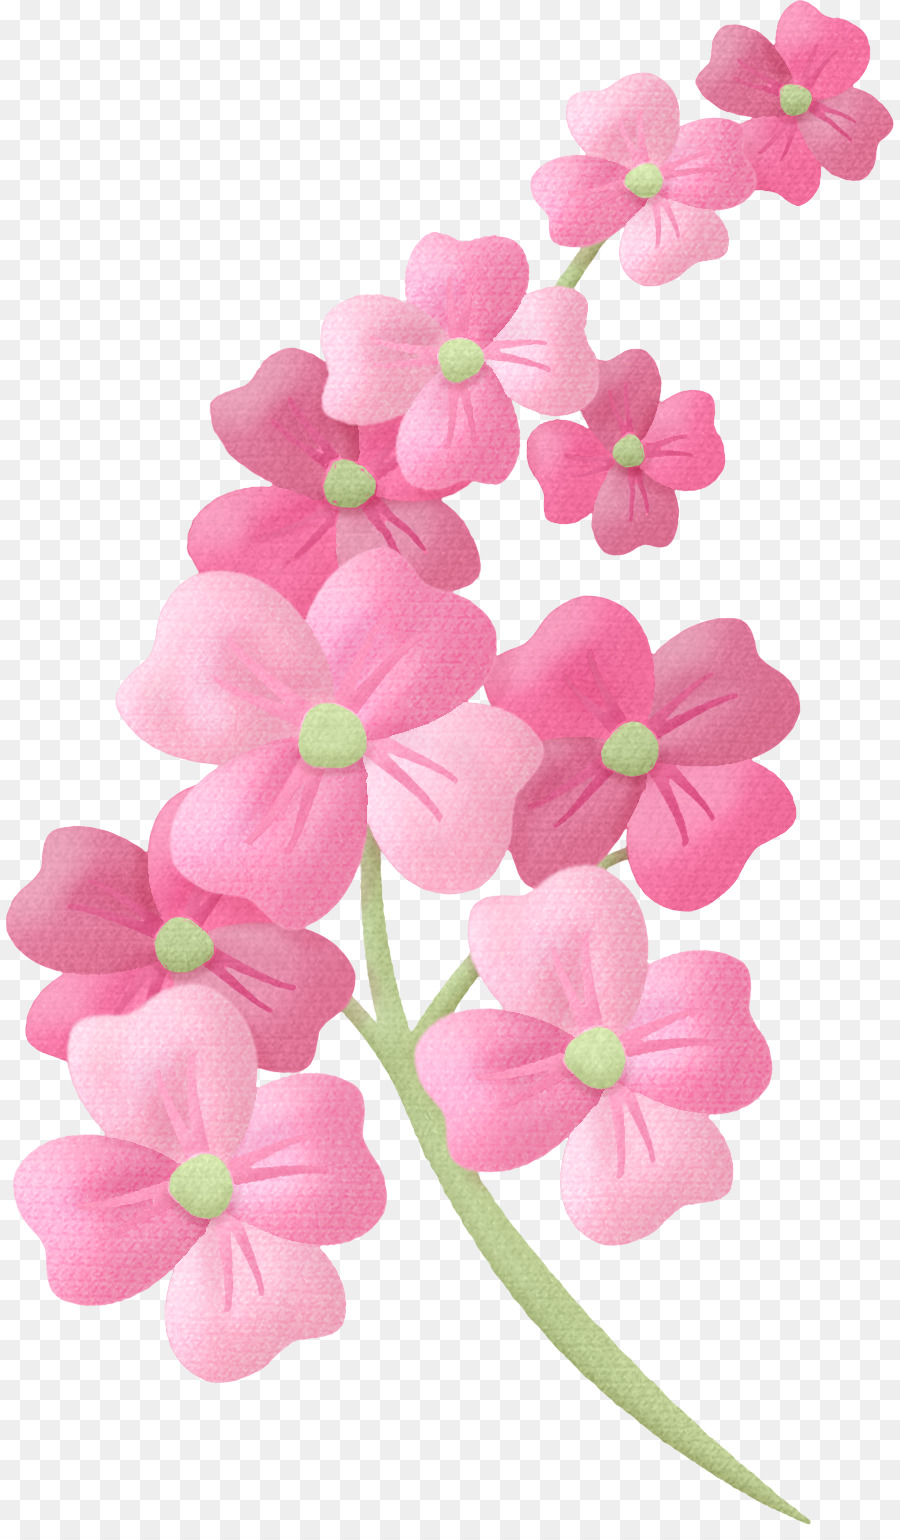 Pink Flowers Clip Art Peach Flower Png Download 8881525 Free